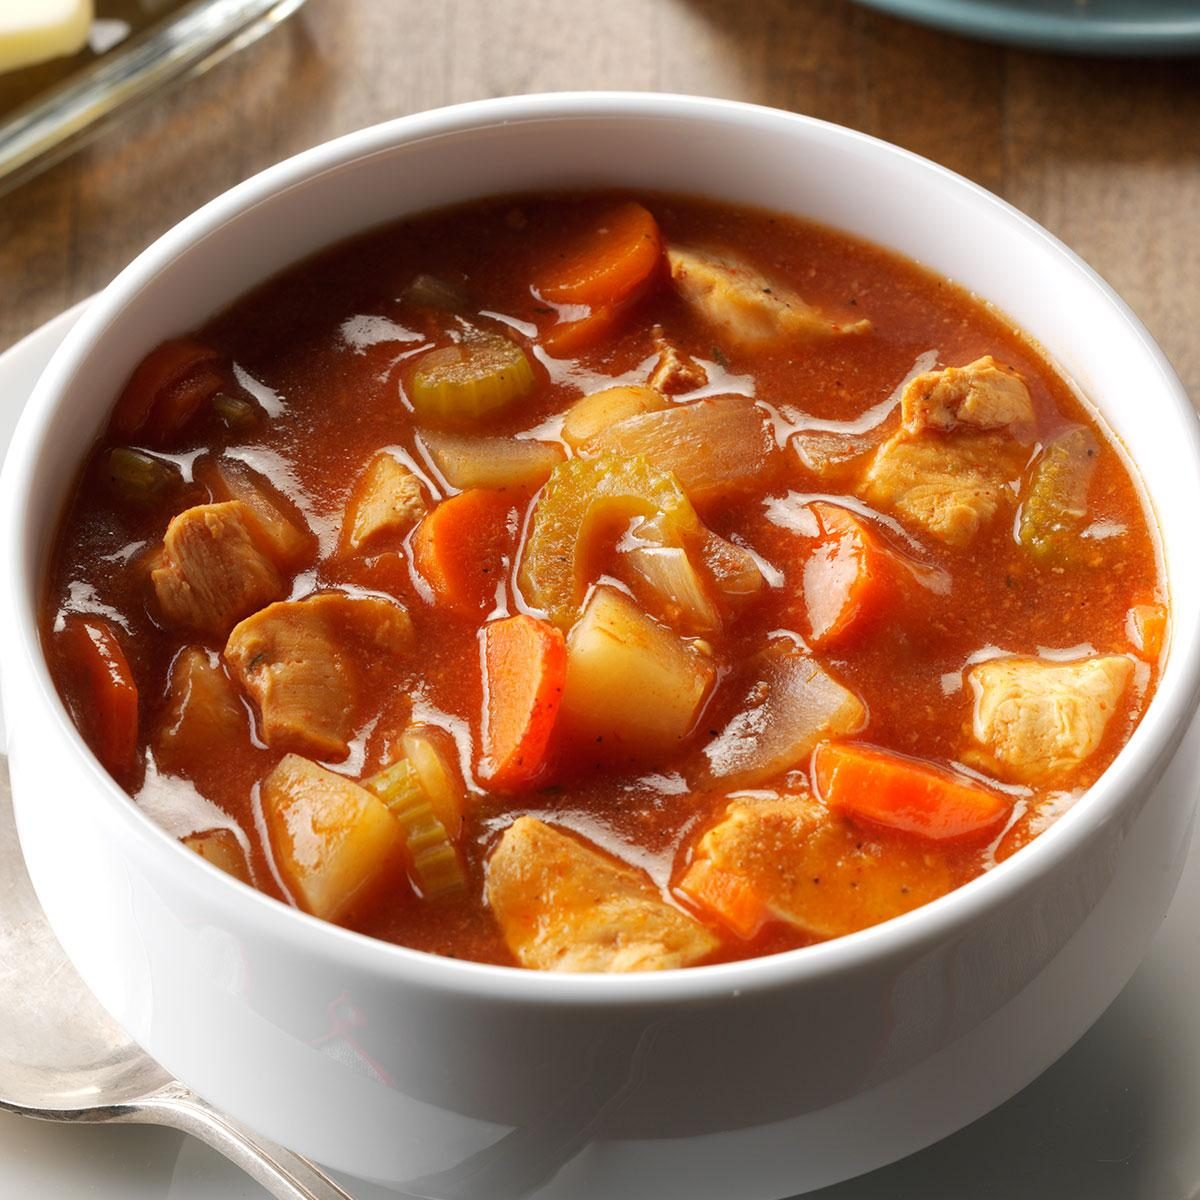 How to cook tasty and healthy stew at home